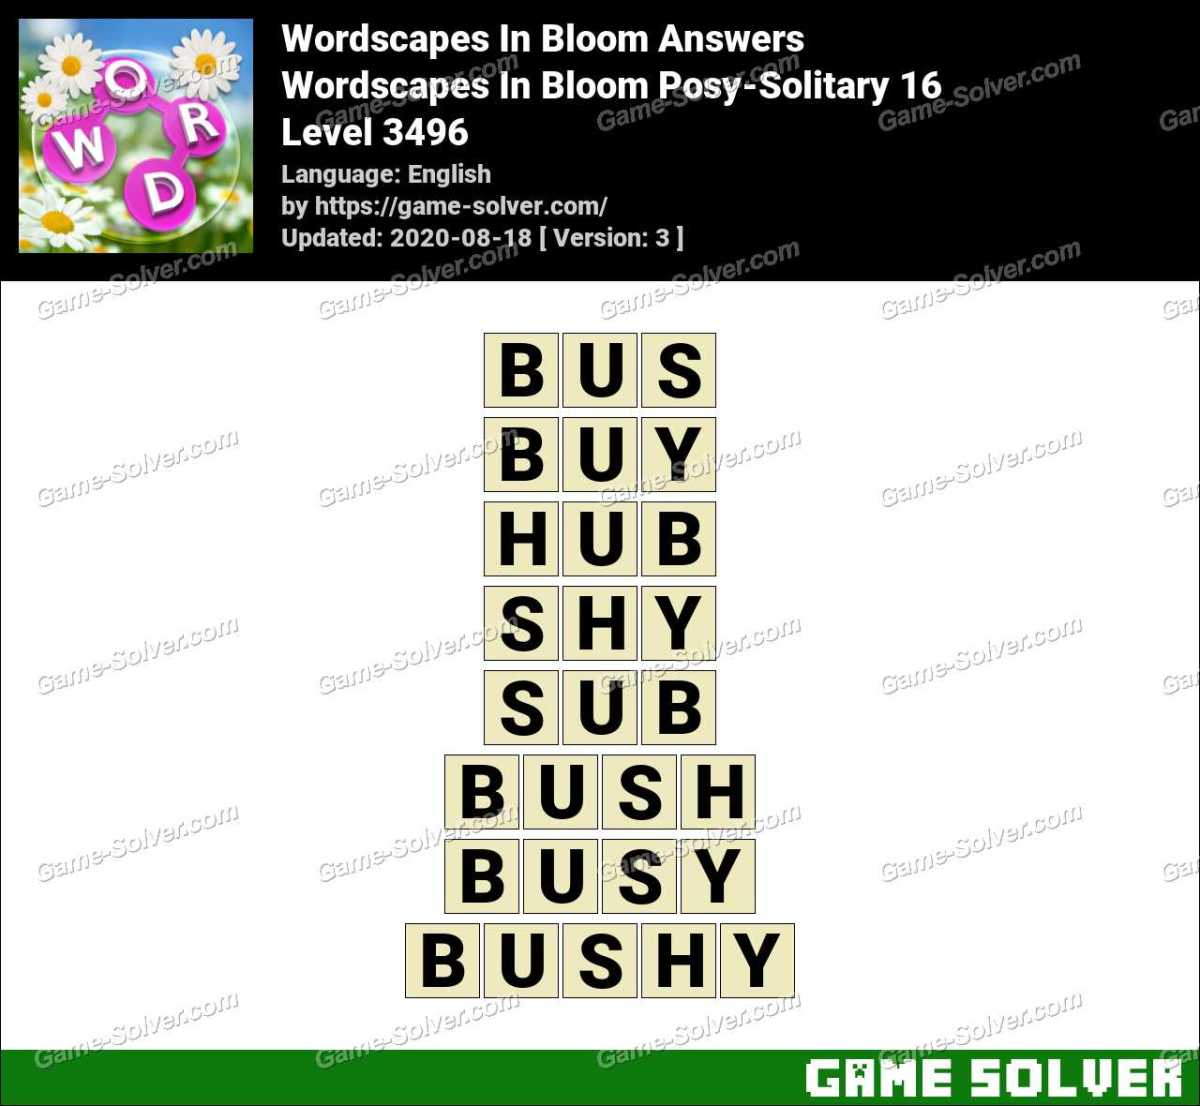 Wordscapes In Bloom Posy-Solitary 16 Answers